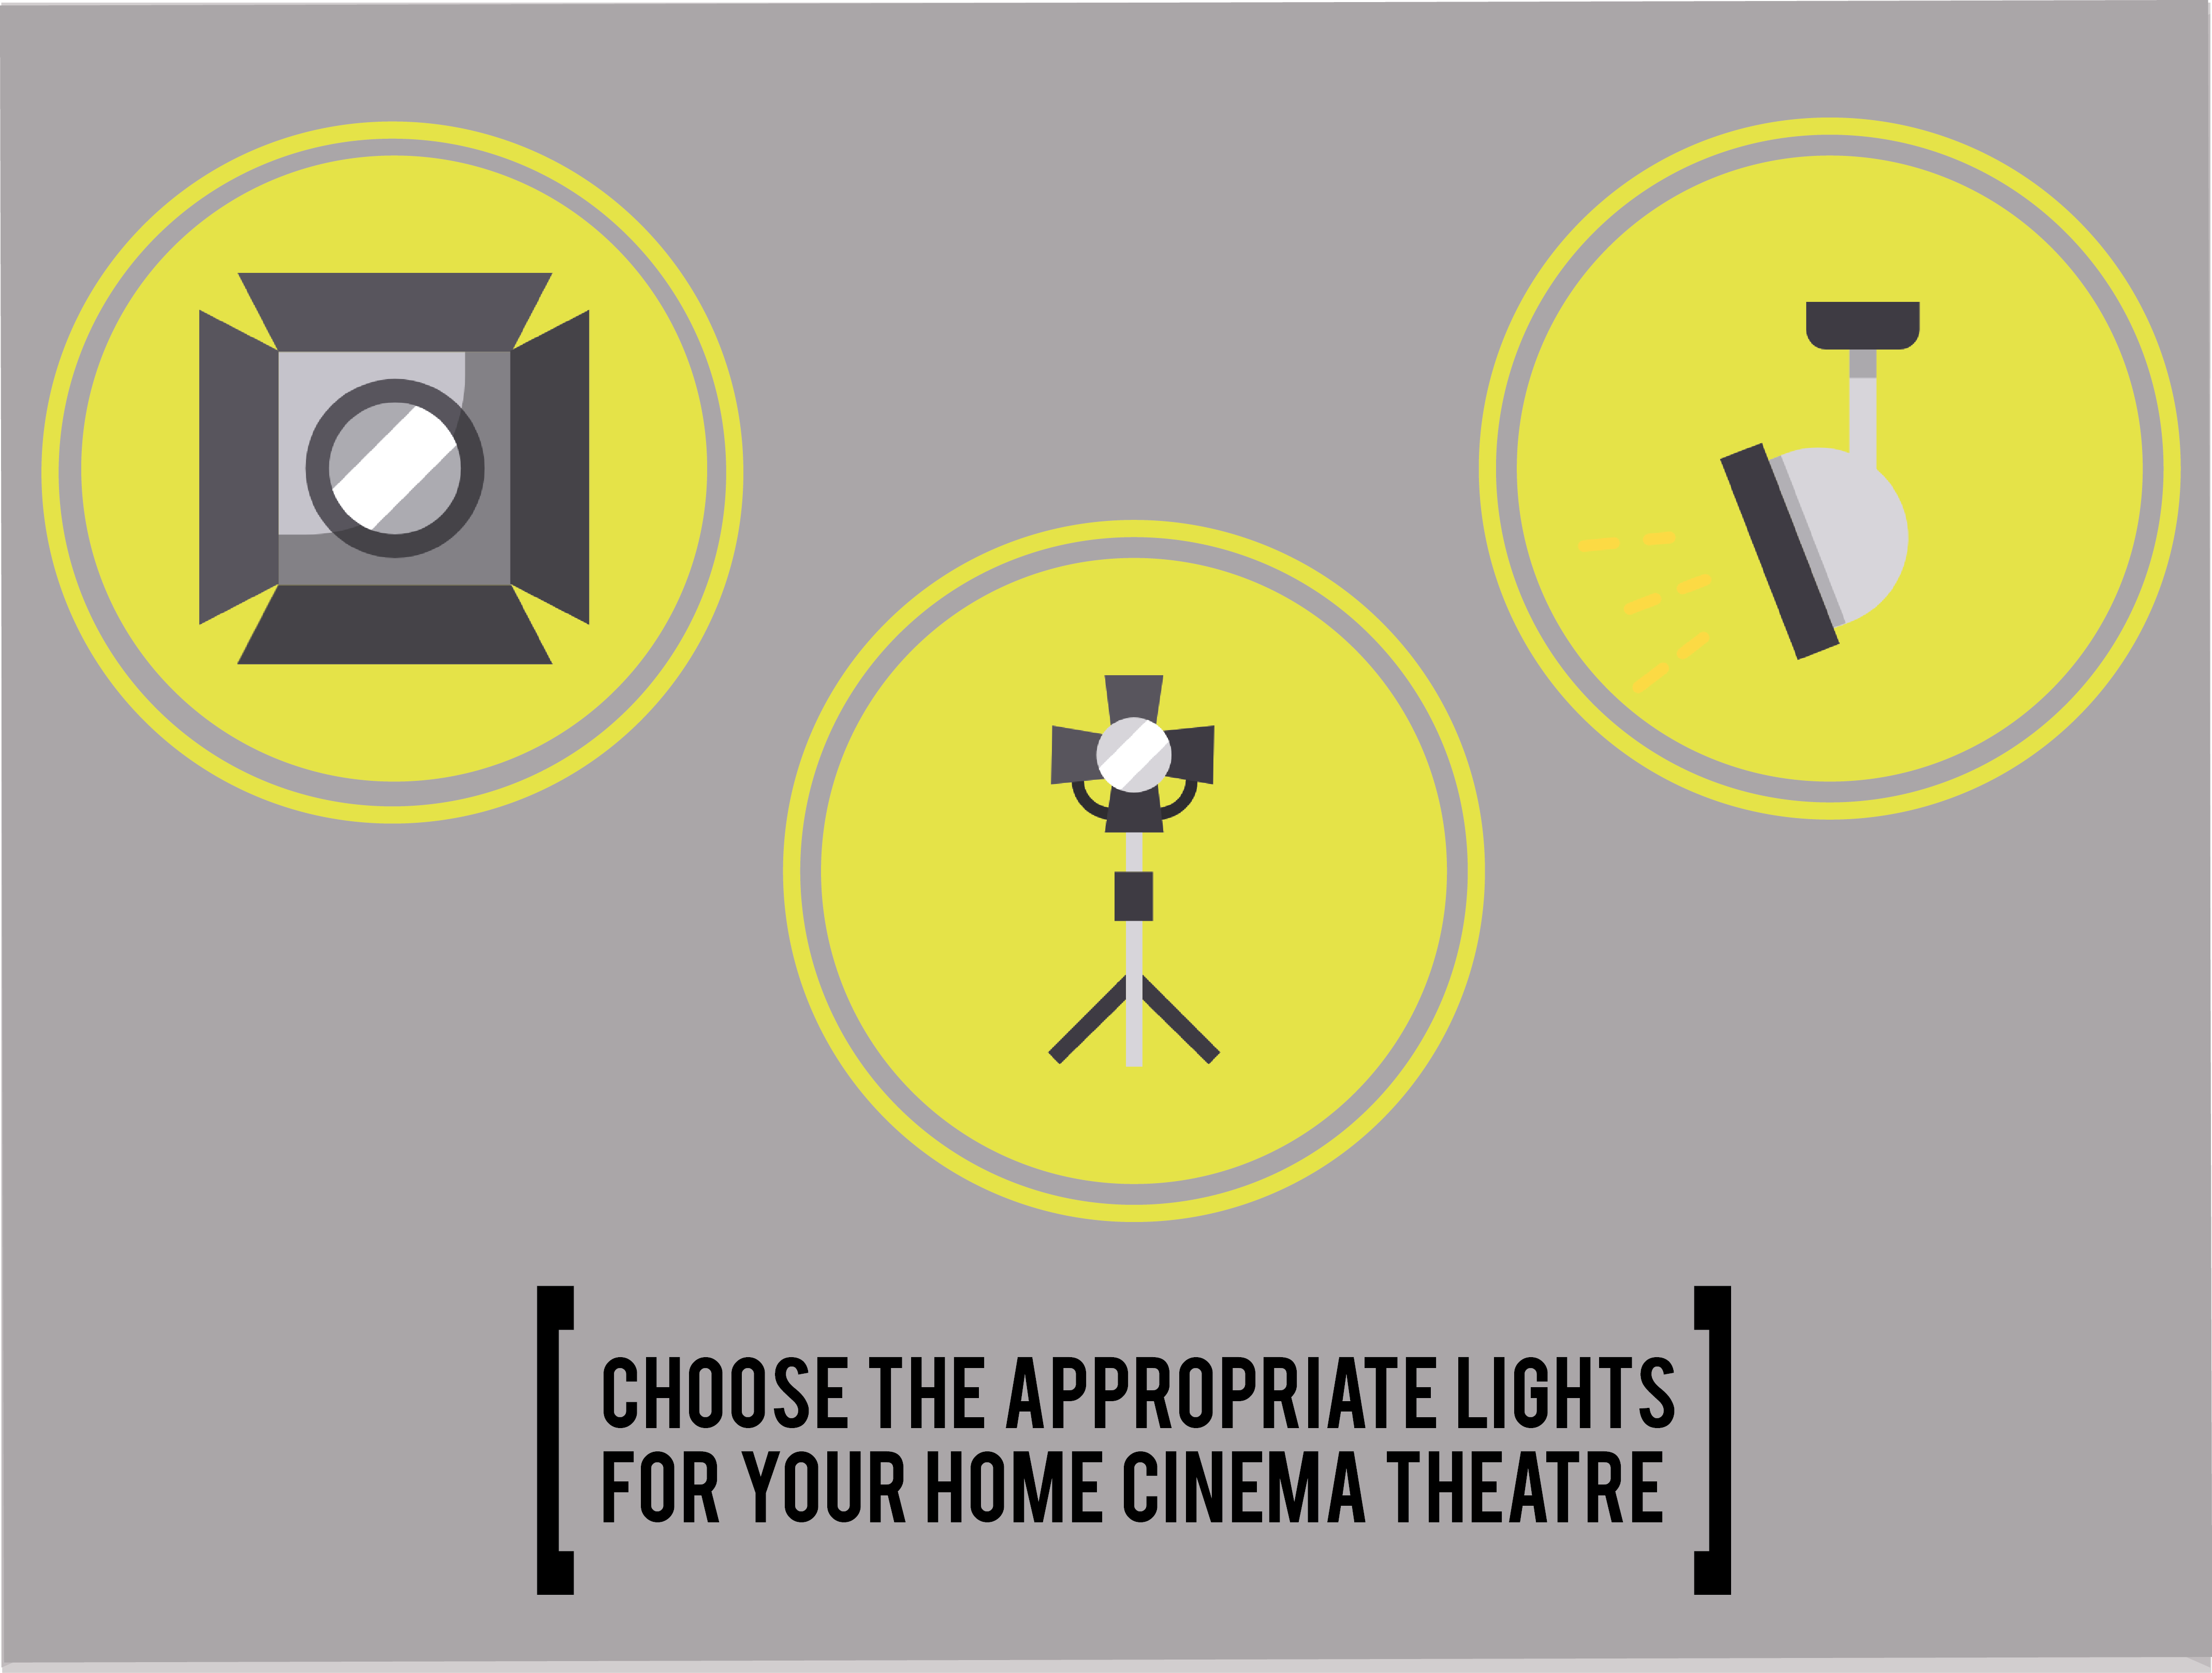 lights for your home cinema theatre